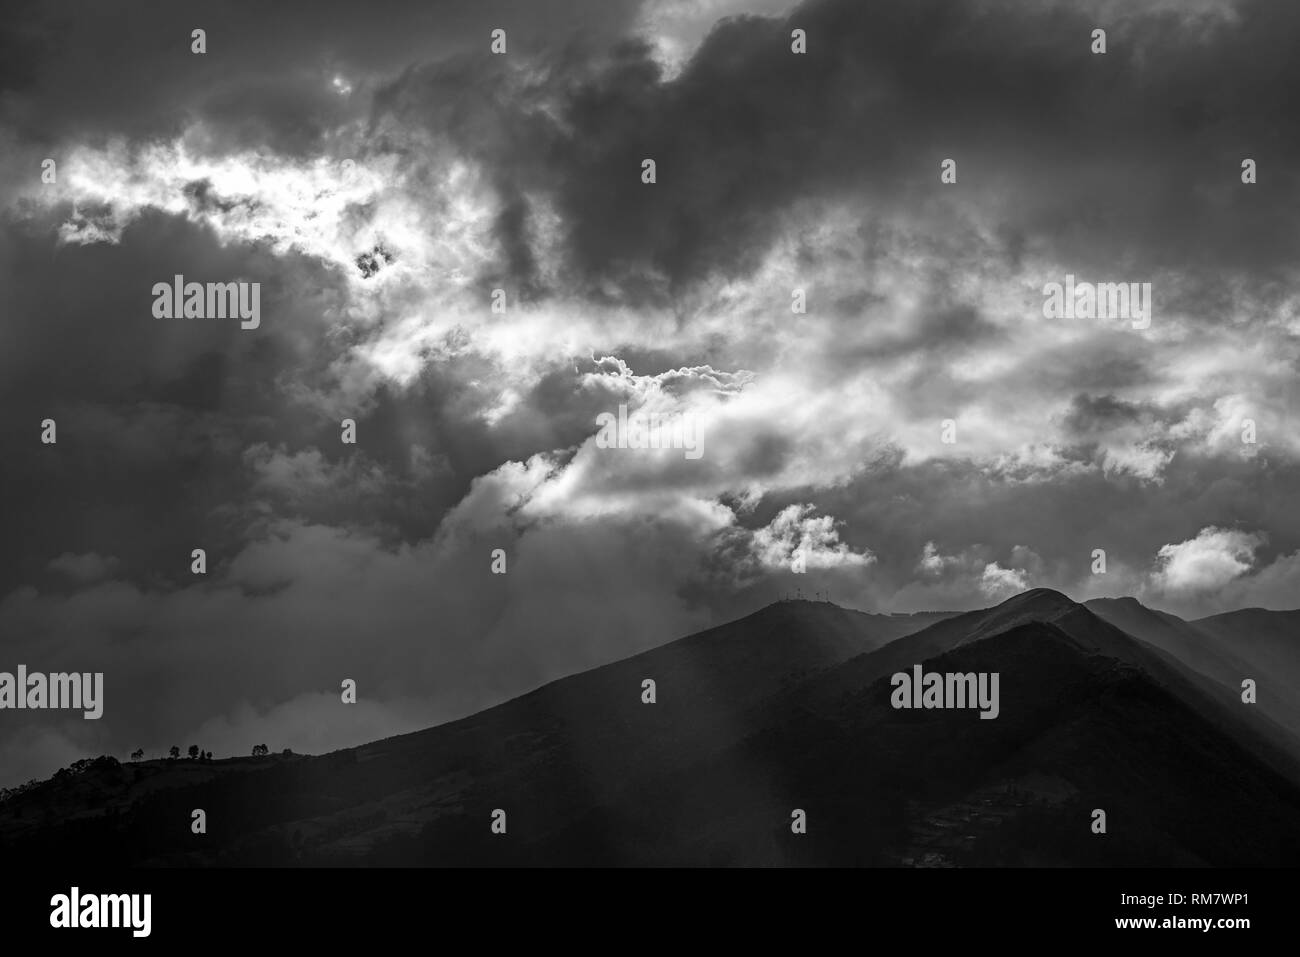 The majestic active Pichincha volcano in the city of Quito at sunset in black and white with a magic sunbeam, Andes mountains, Ecuador. - Stock Image